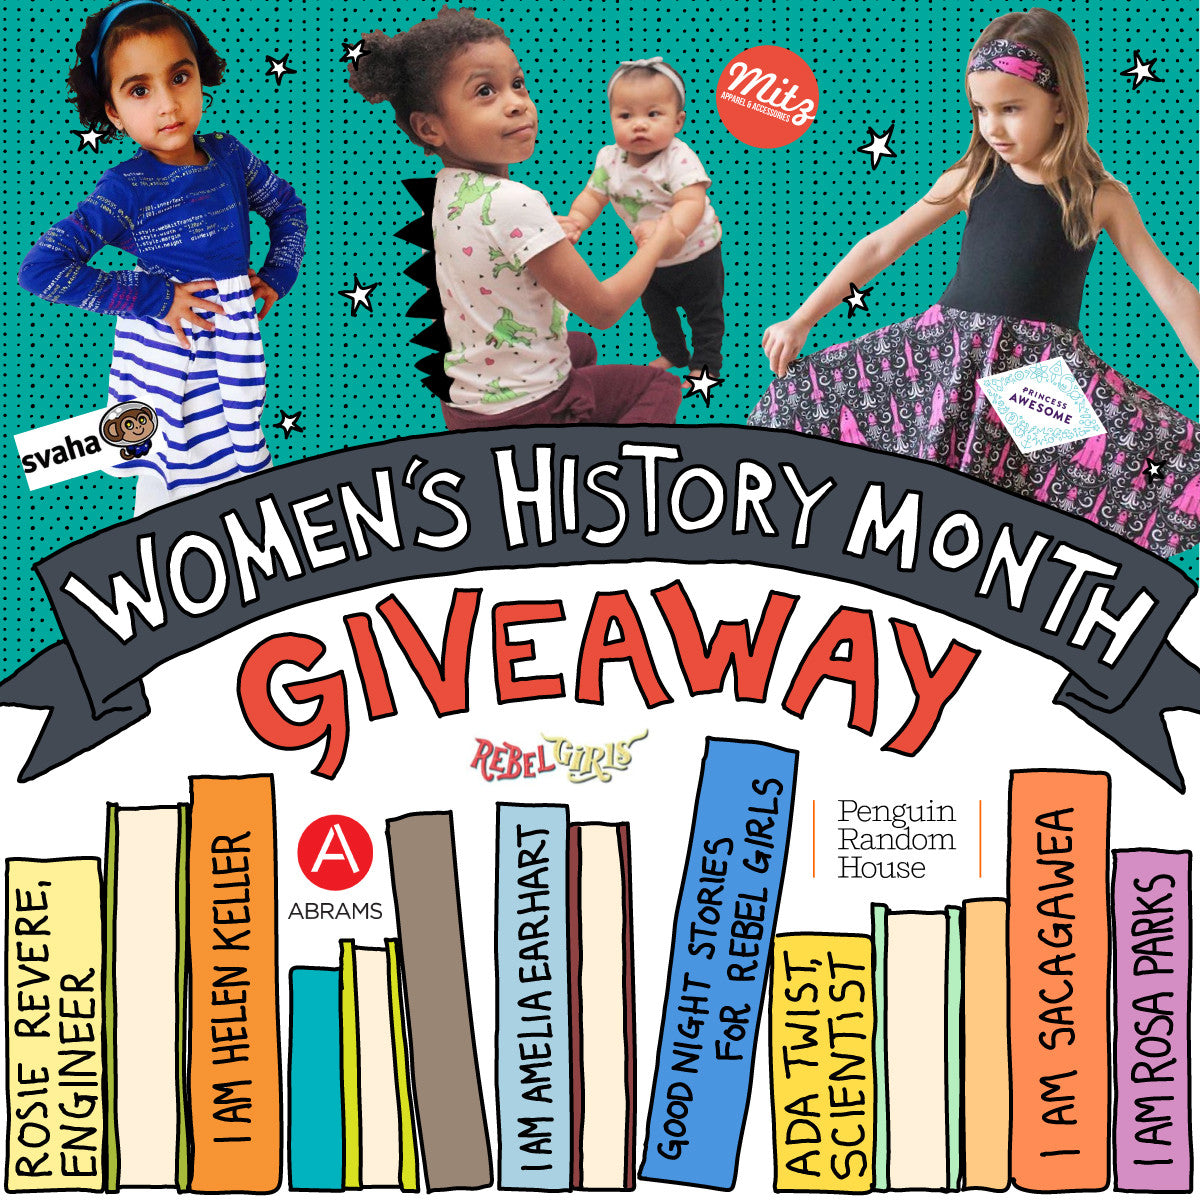 INSPIRING THE NEXT GENERATION: Women's History Month Giveaway